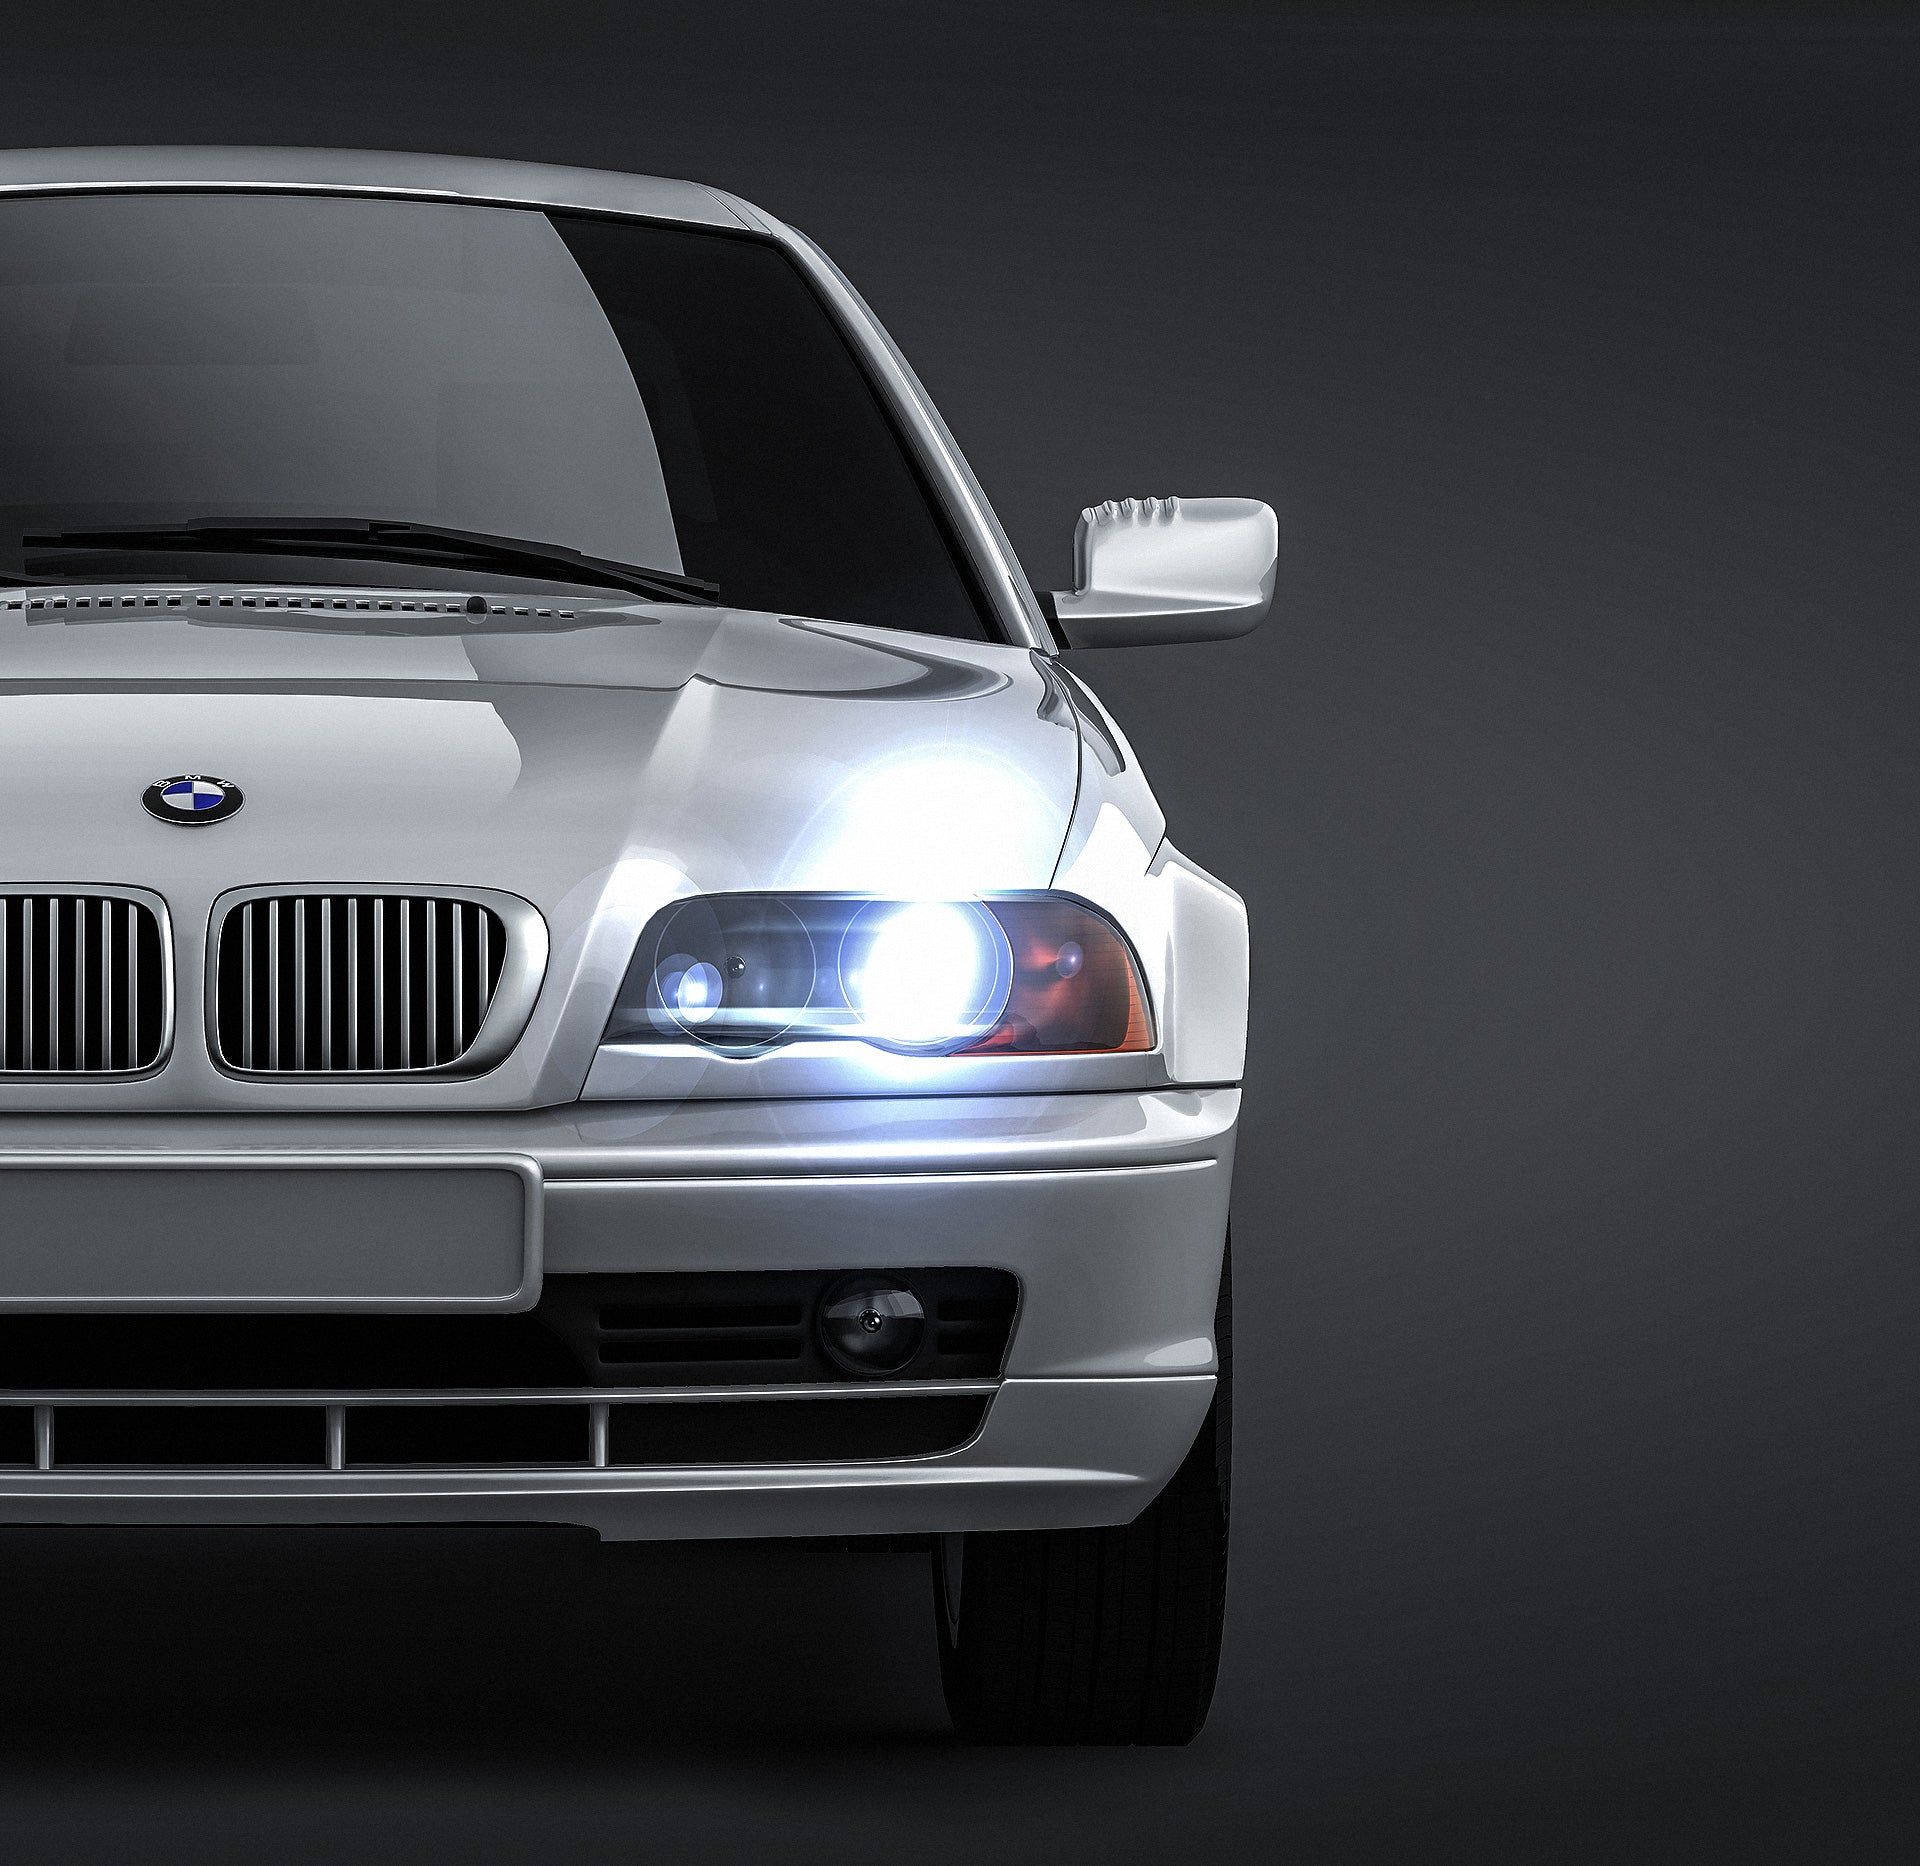 BMW 3 E46 coupe 2004 - all sides Car Mockup Template.psd